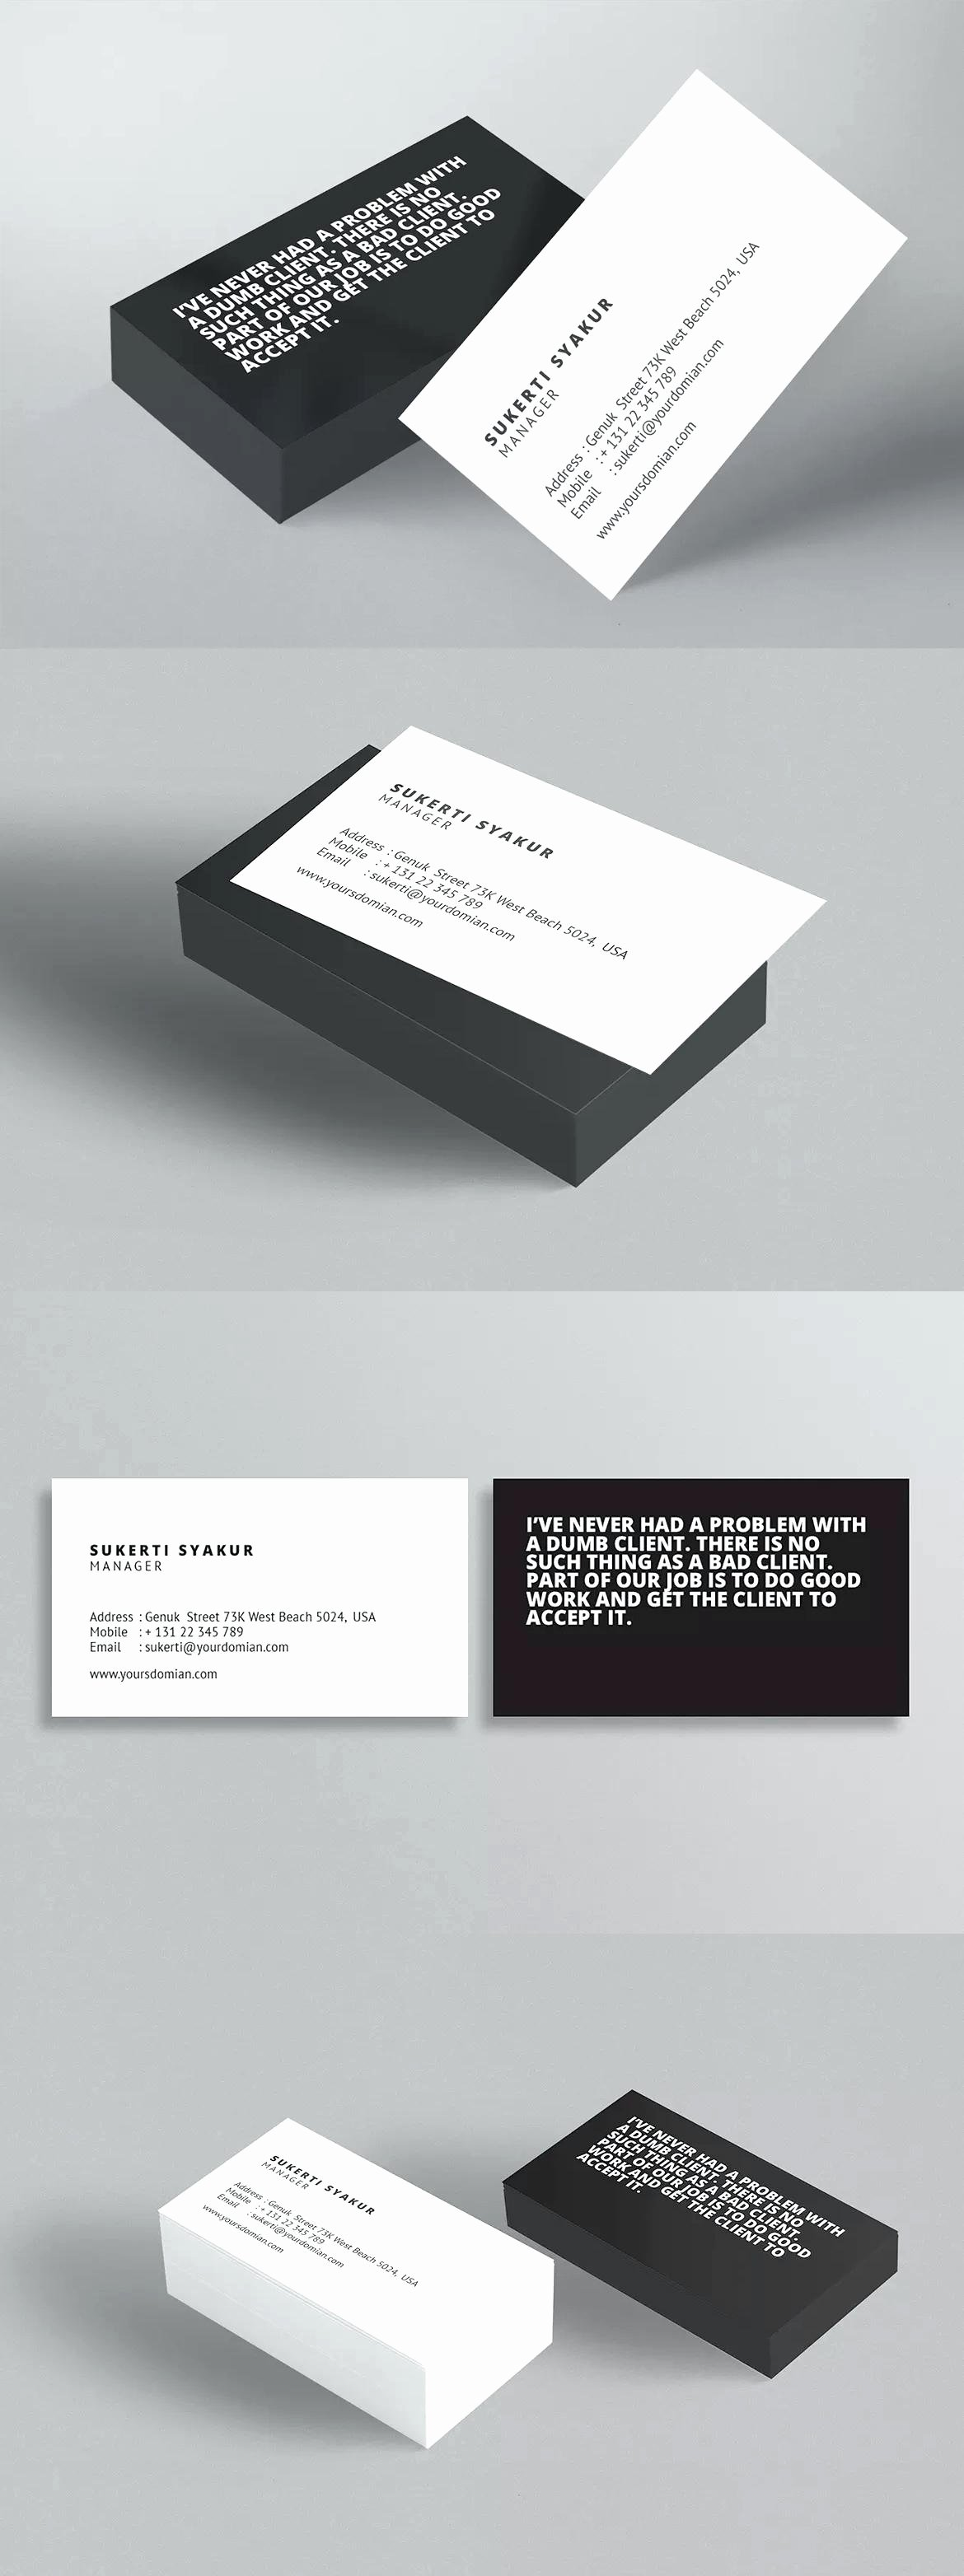 Indesign Business Card Template Free Beautiful Business Card Template Indesign